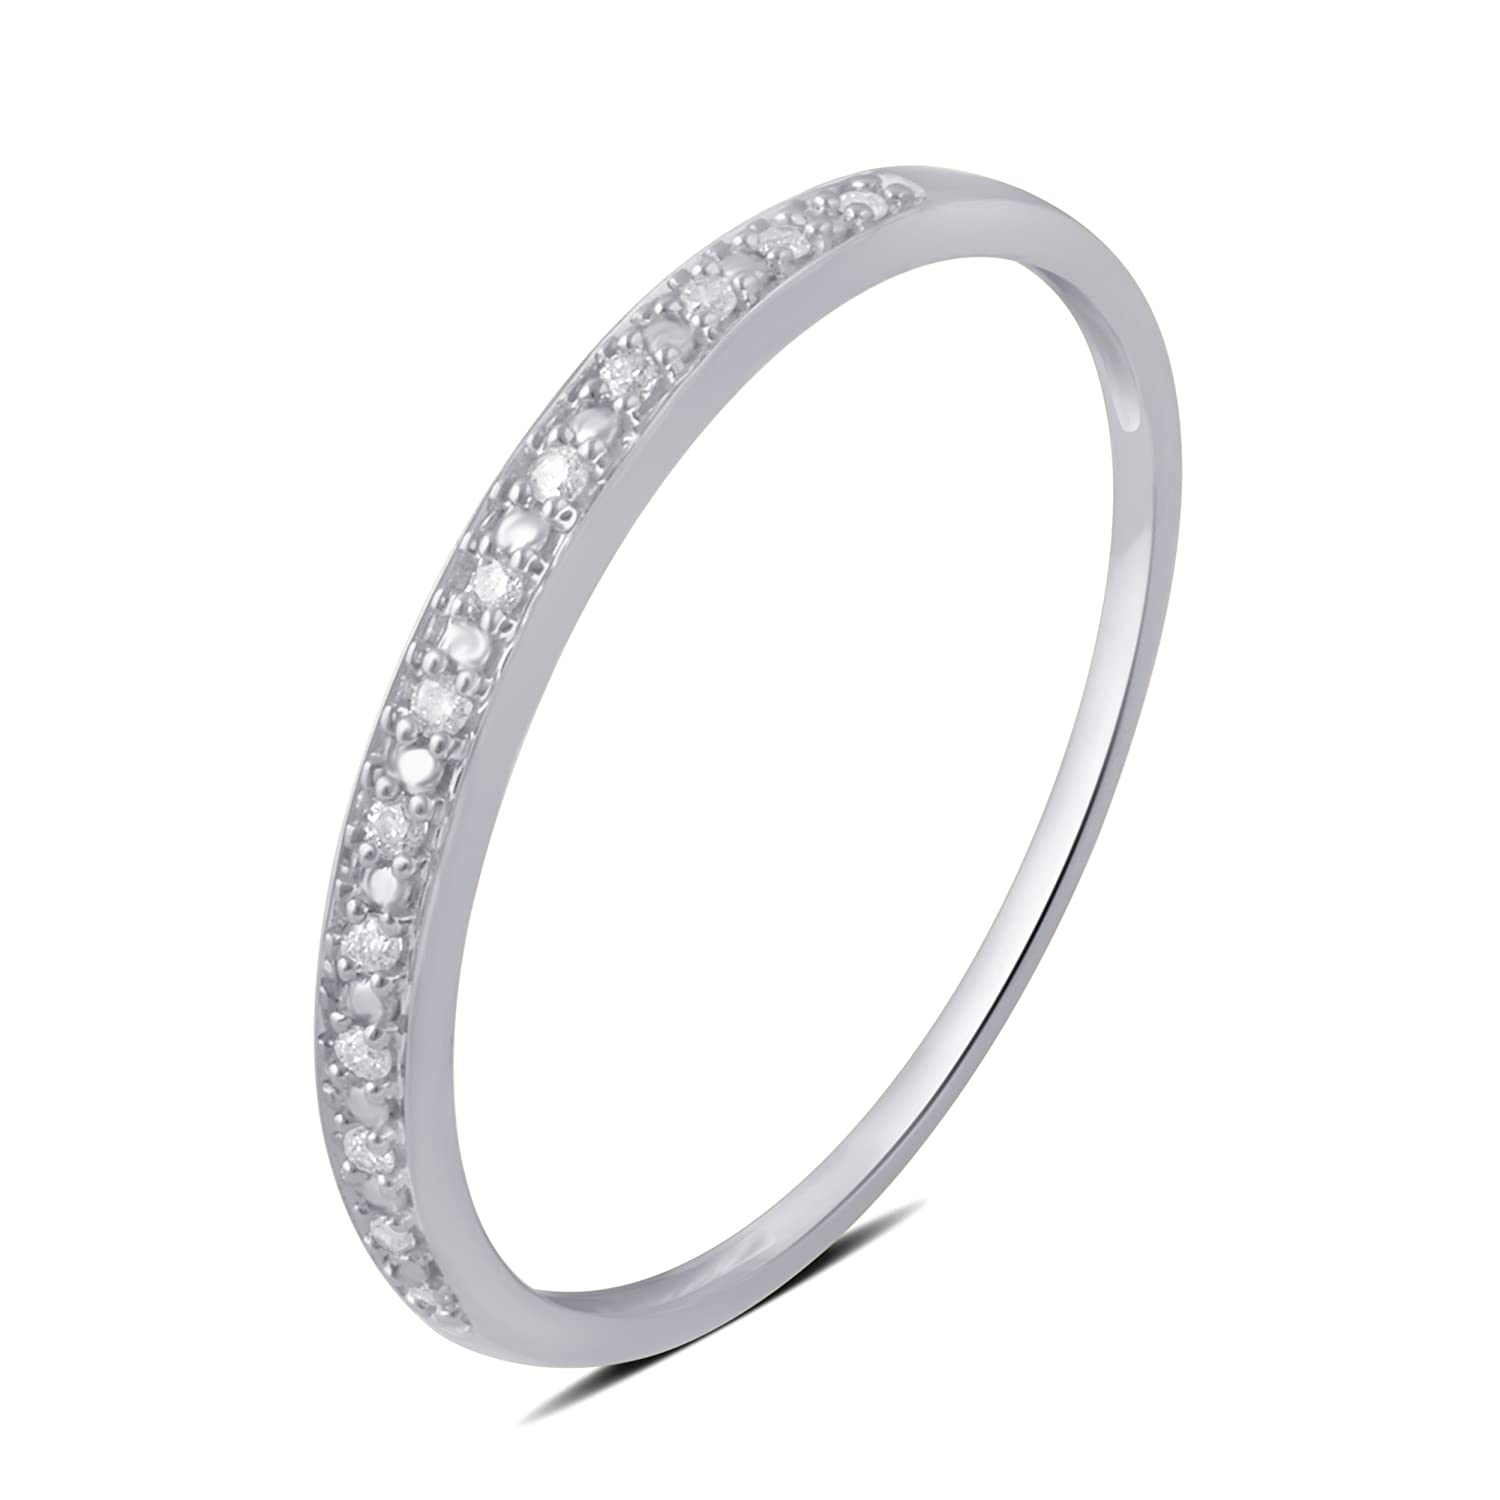 0.05 CTTW Round Diamond Wedding Band in 10K White Gold Kiran Jewels Inc